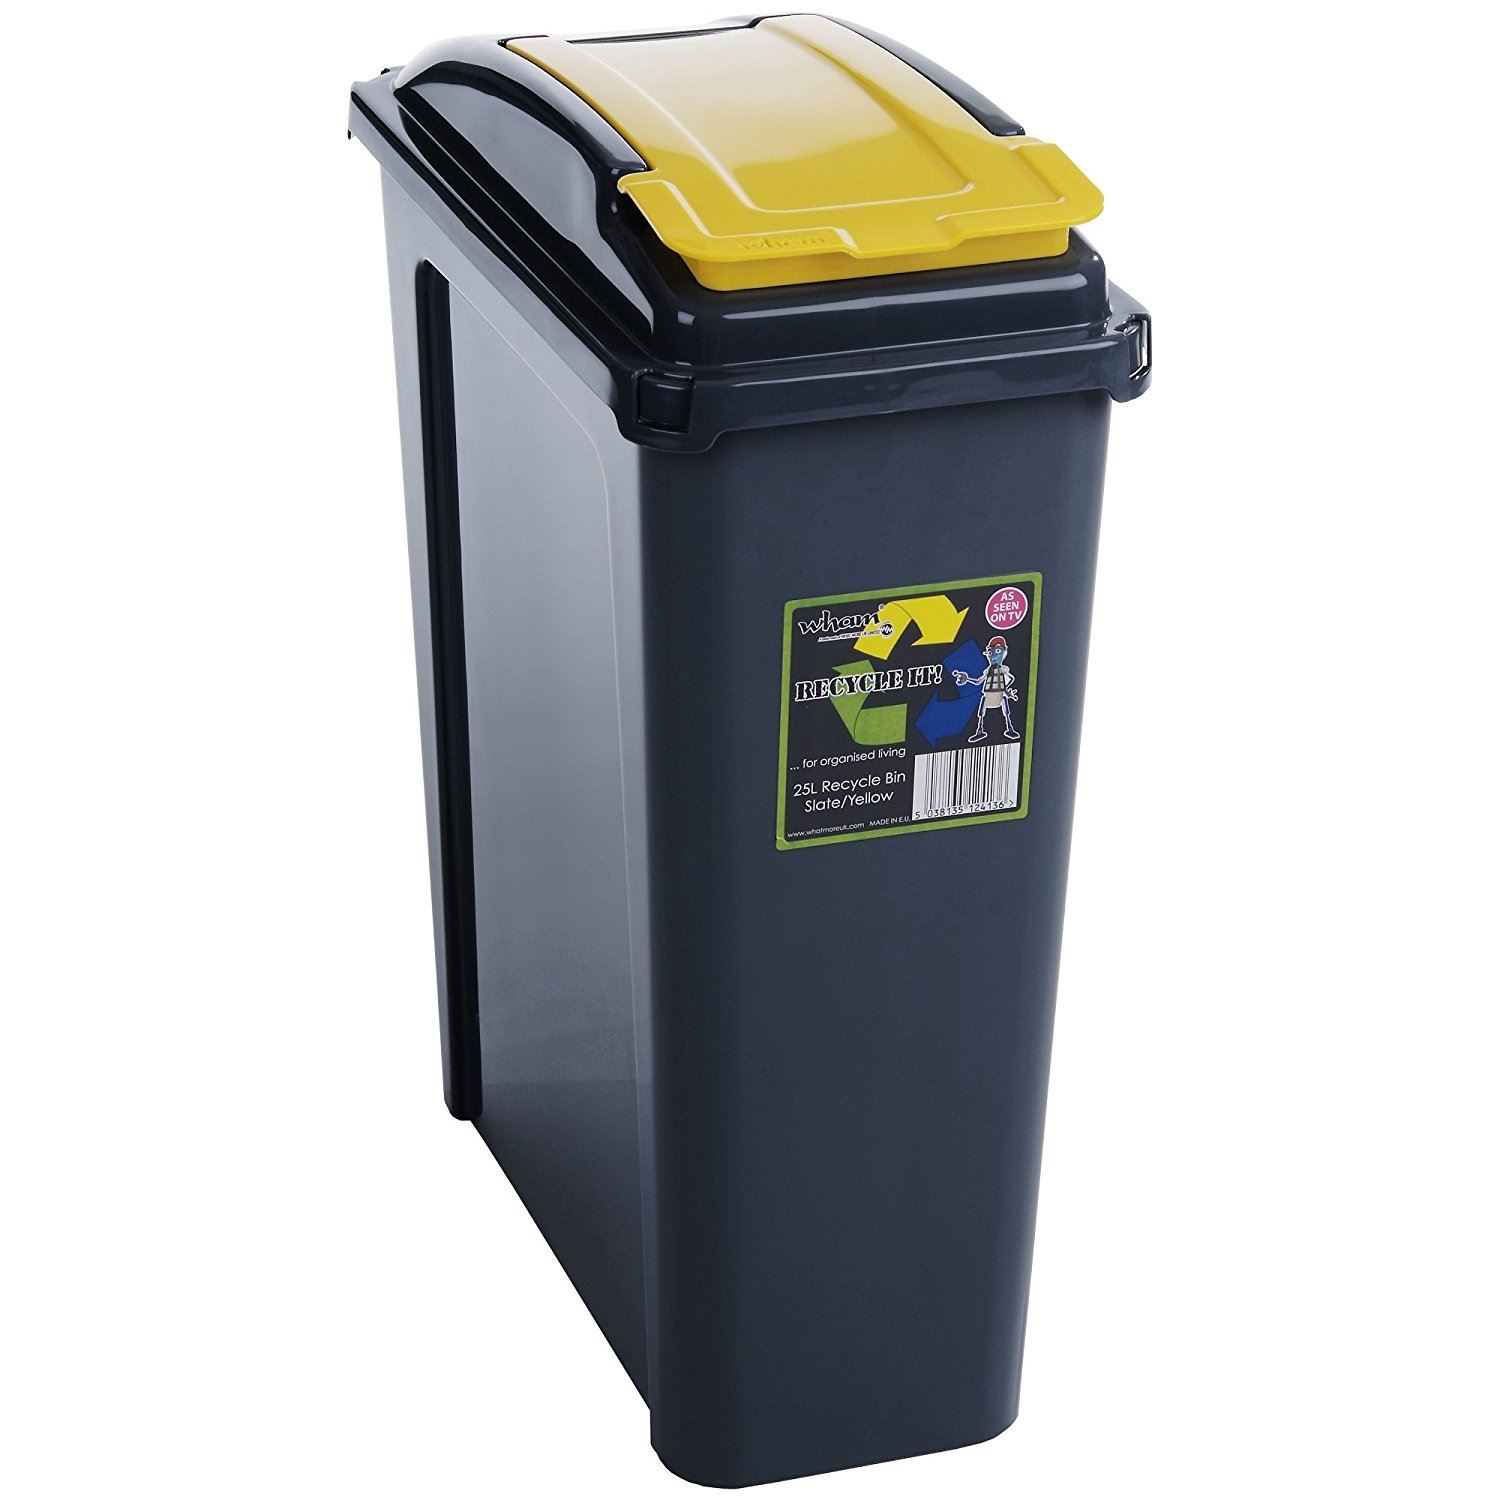 Kitchen Rubbish Bins Uk